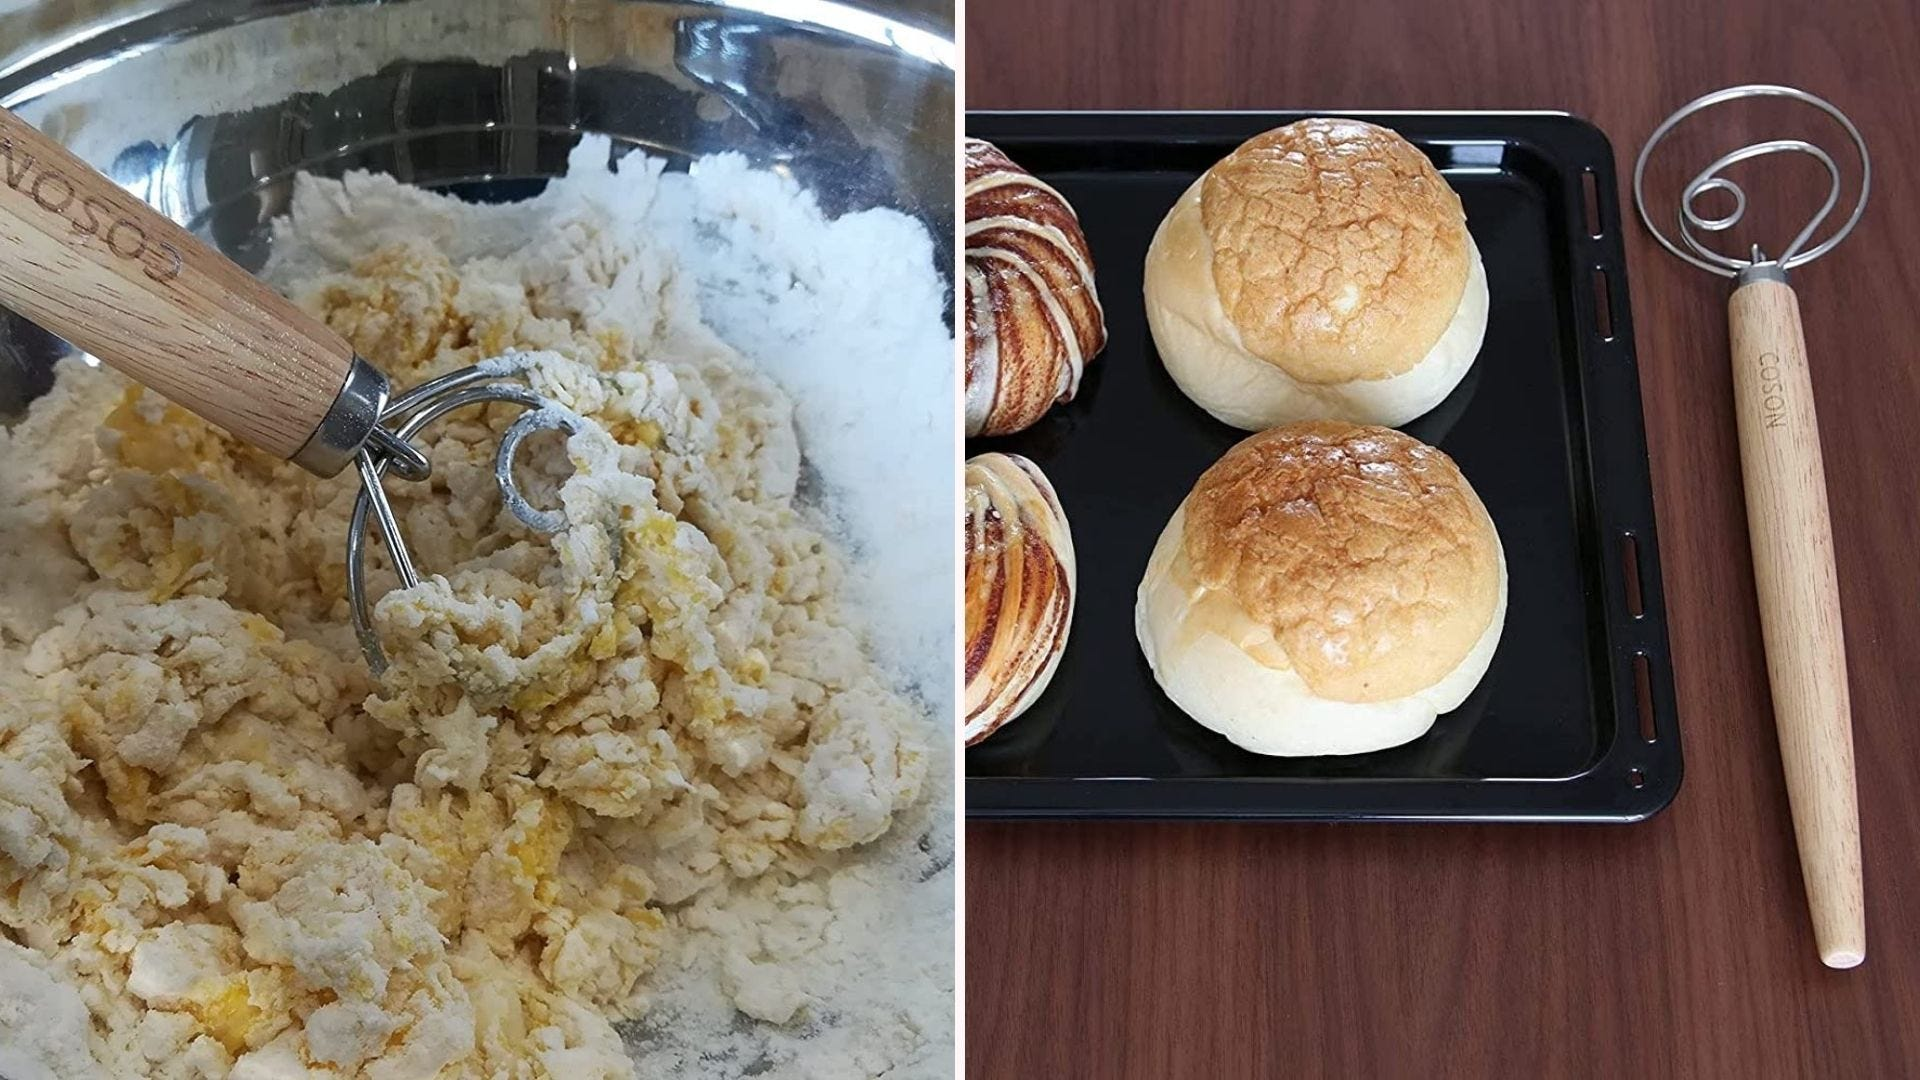 A dough whisk mixing dough; a dough whisk sitting next to a tray of rolls